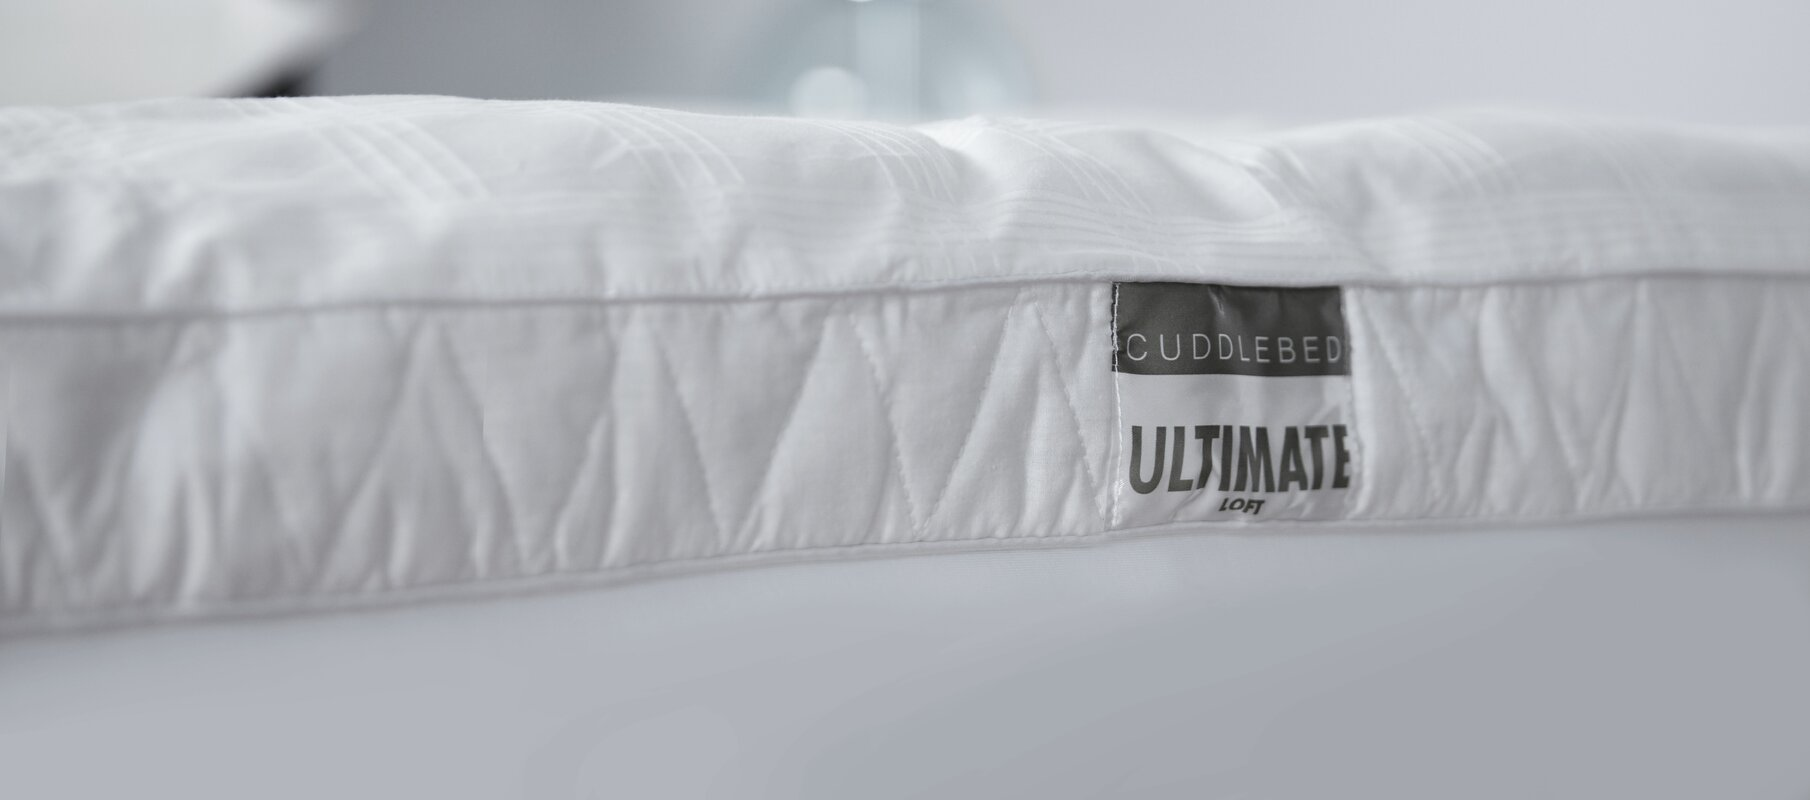 Ultimate Cuddle Bed Topper Reviews